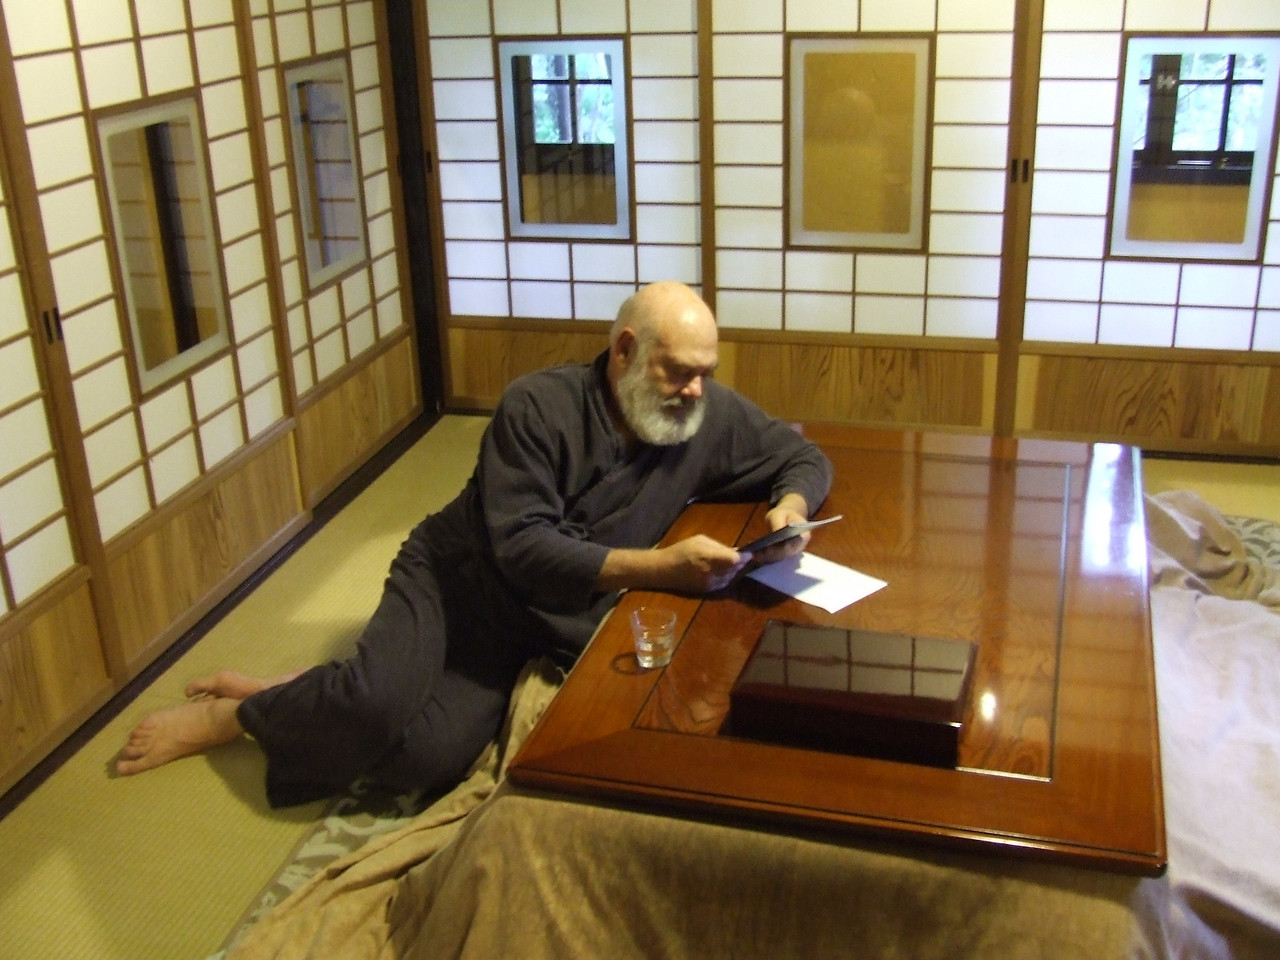 There's nothing like the serenity of a ryokan, a traditional Japanese inn. Note the kotatsu, a low wooden table covered with a futon. A heat source beneath heats the space under the table; the surrounding comforter holds in the warmth. Putting your legs under such a table is a wonderful way to keep warm efficiently. It works especially well if you are wearing a traditional samue, as I am. The heat rises through the garment's open bottom and exits the neck, keeping the whole body warm. But on this pleasant May evening, extra heat was not necessary.